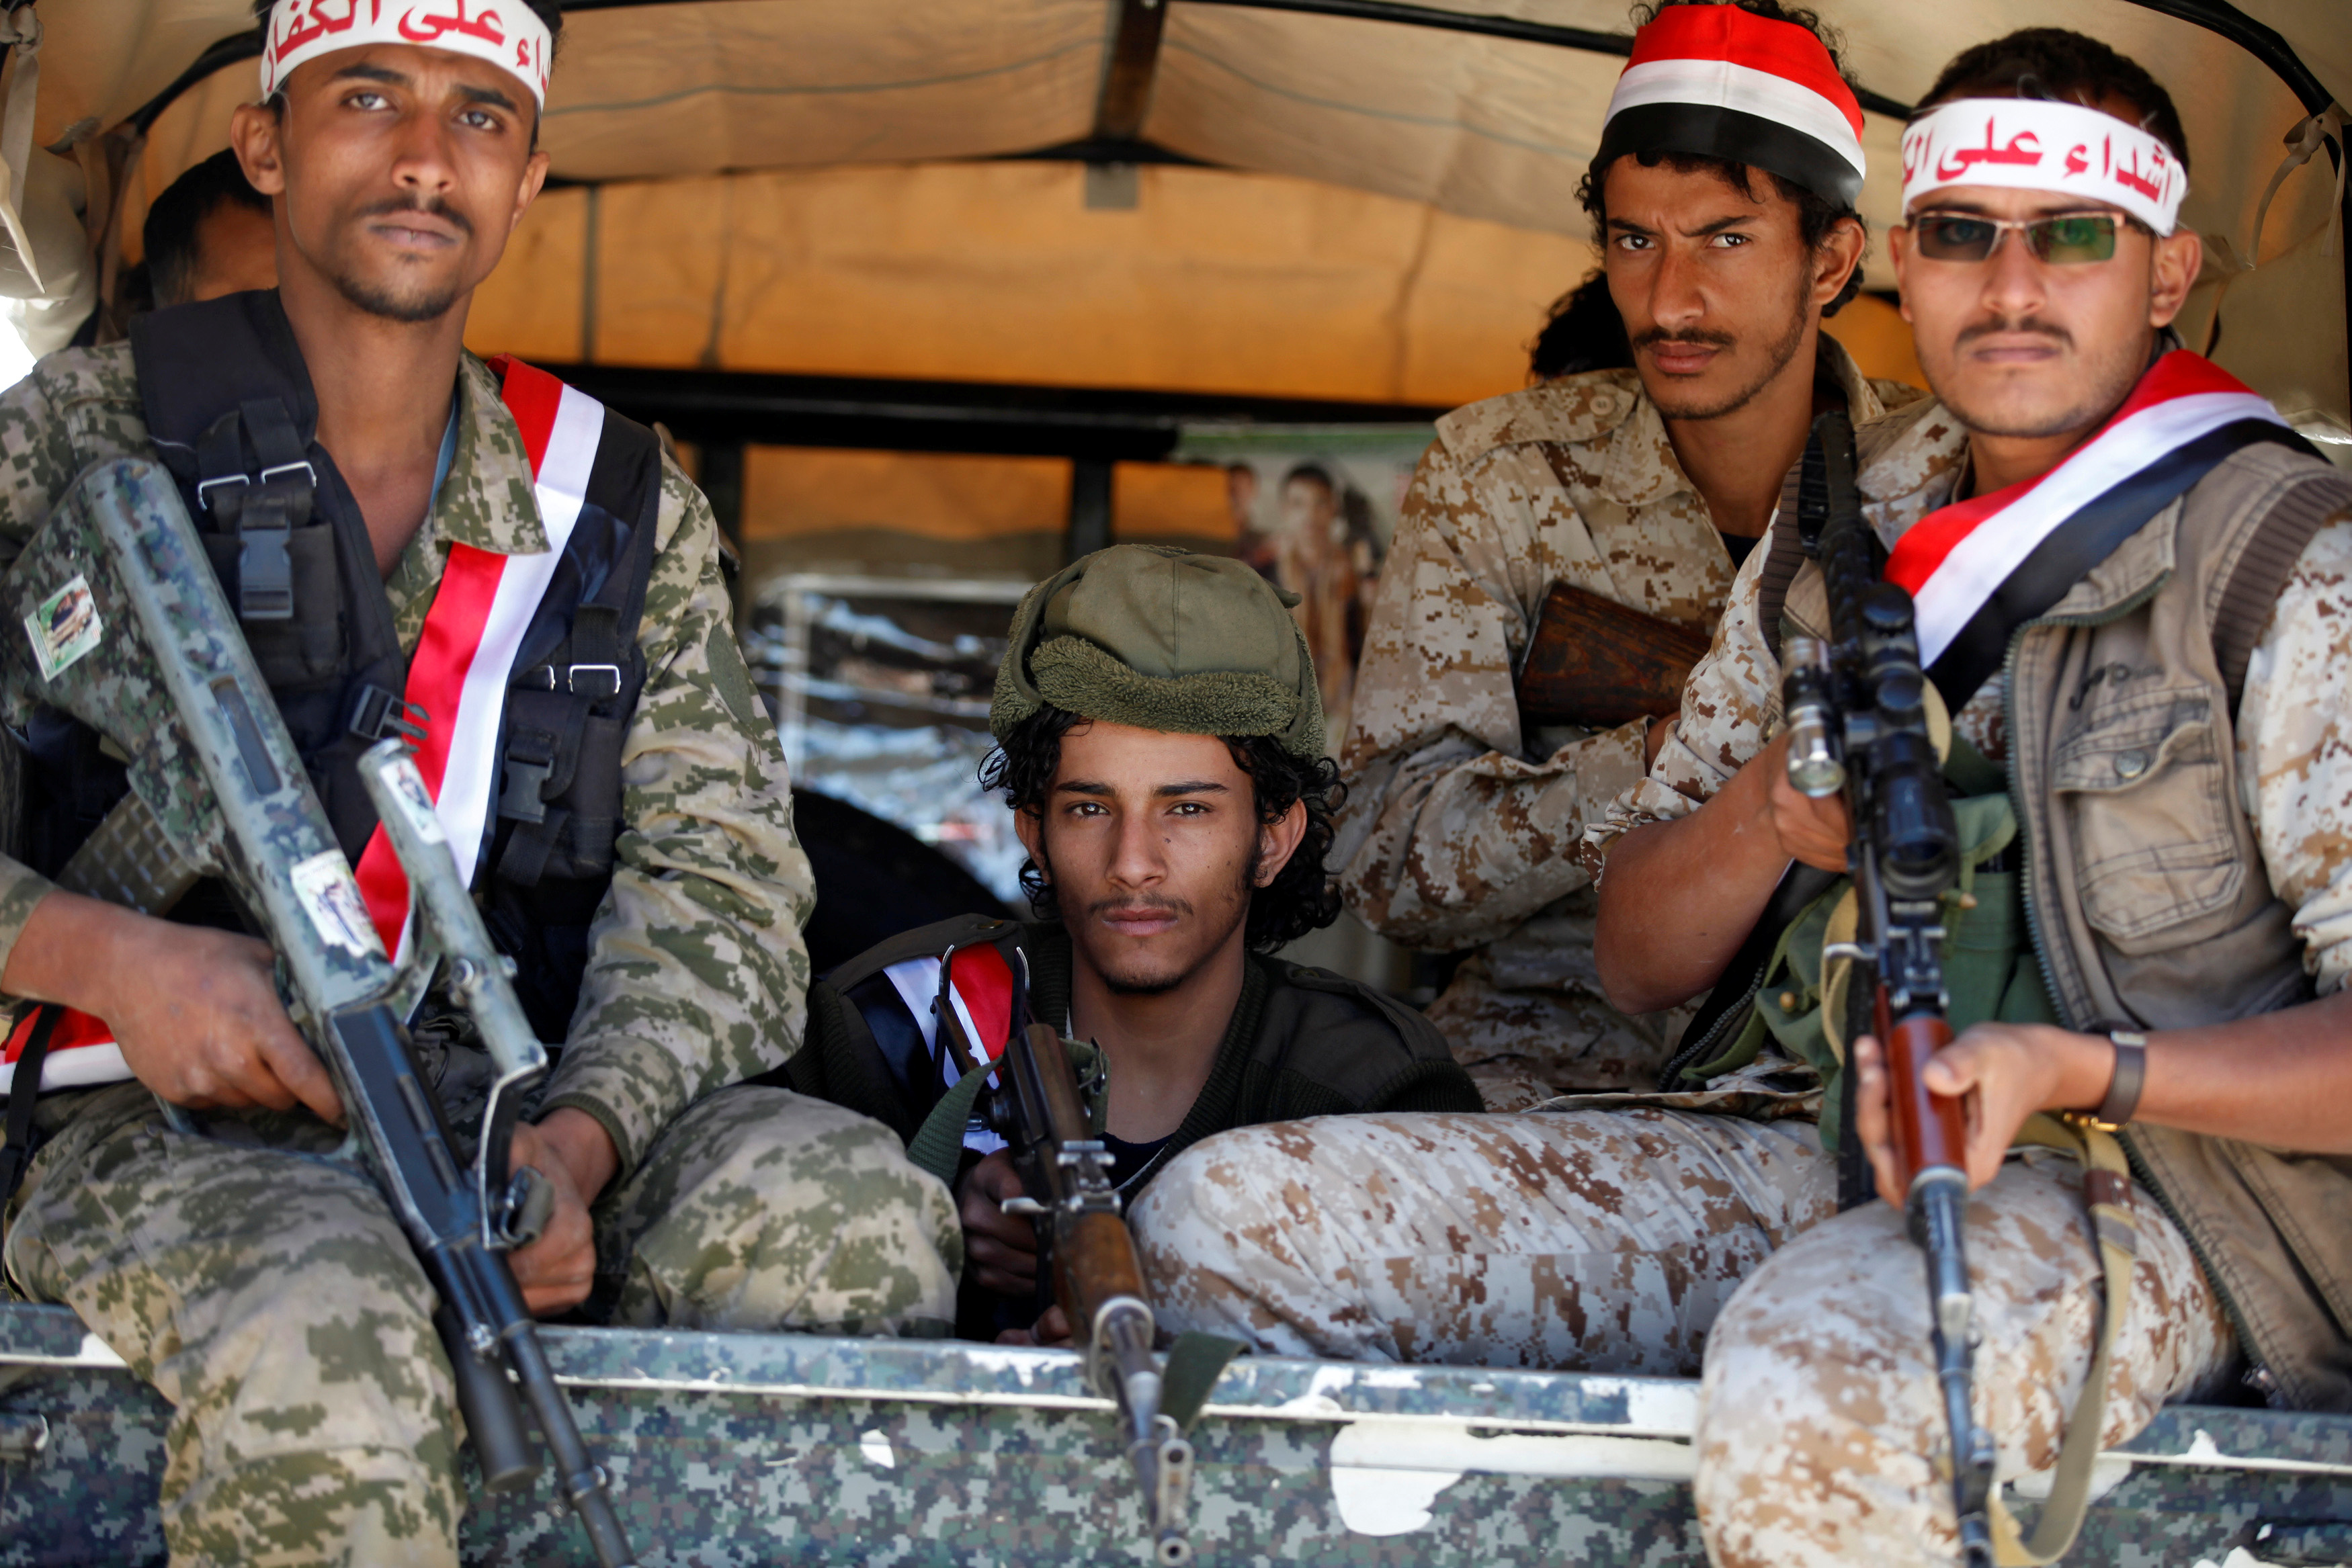 Newly recruited Houthi fighters ride on the back of a pick-up truck